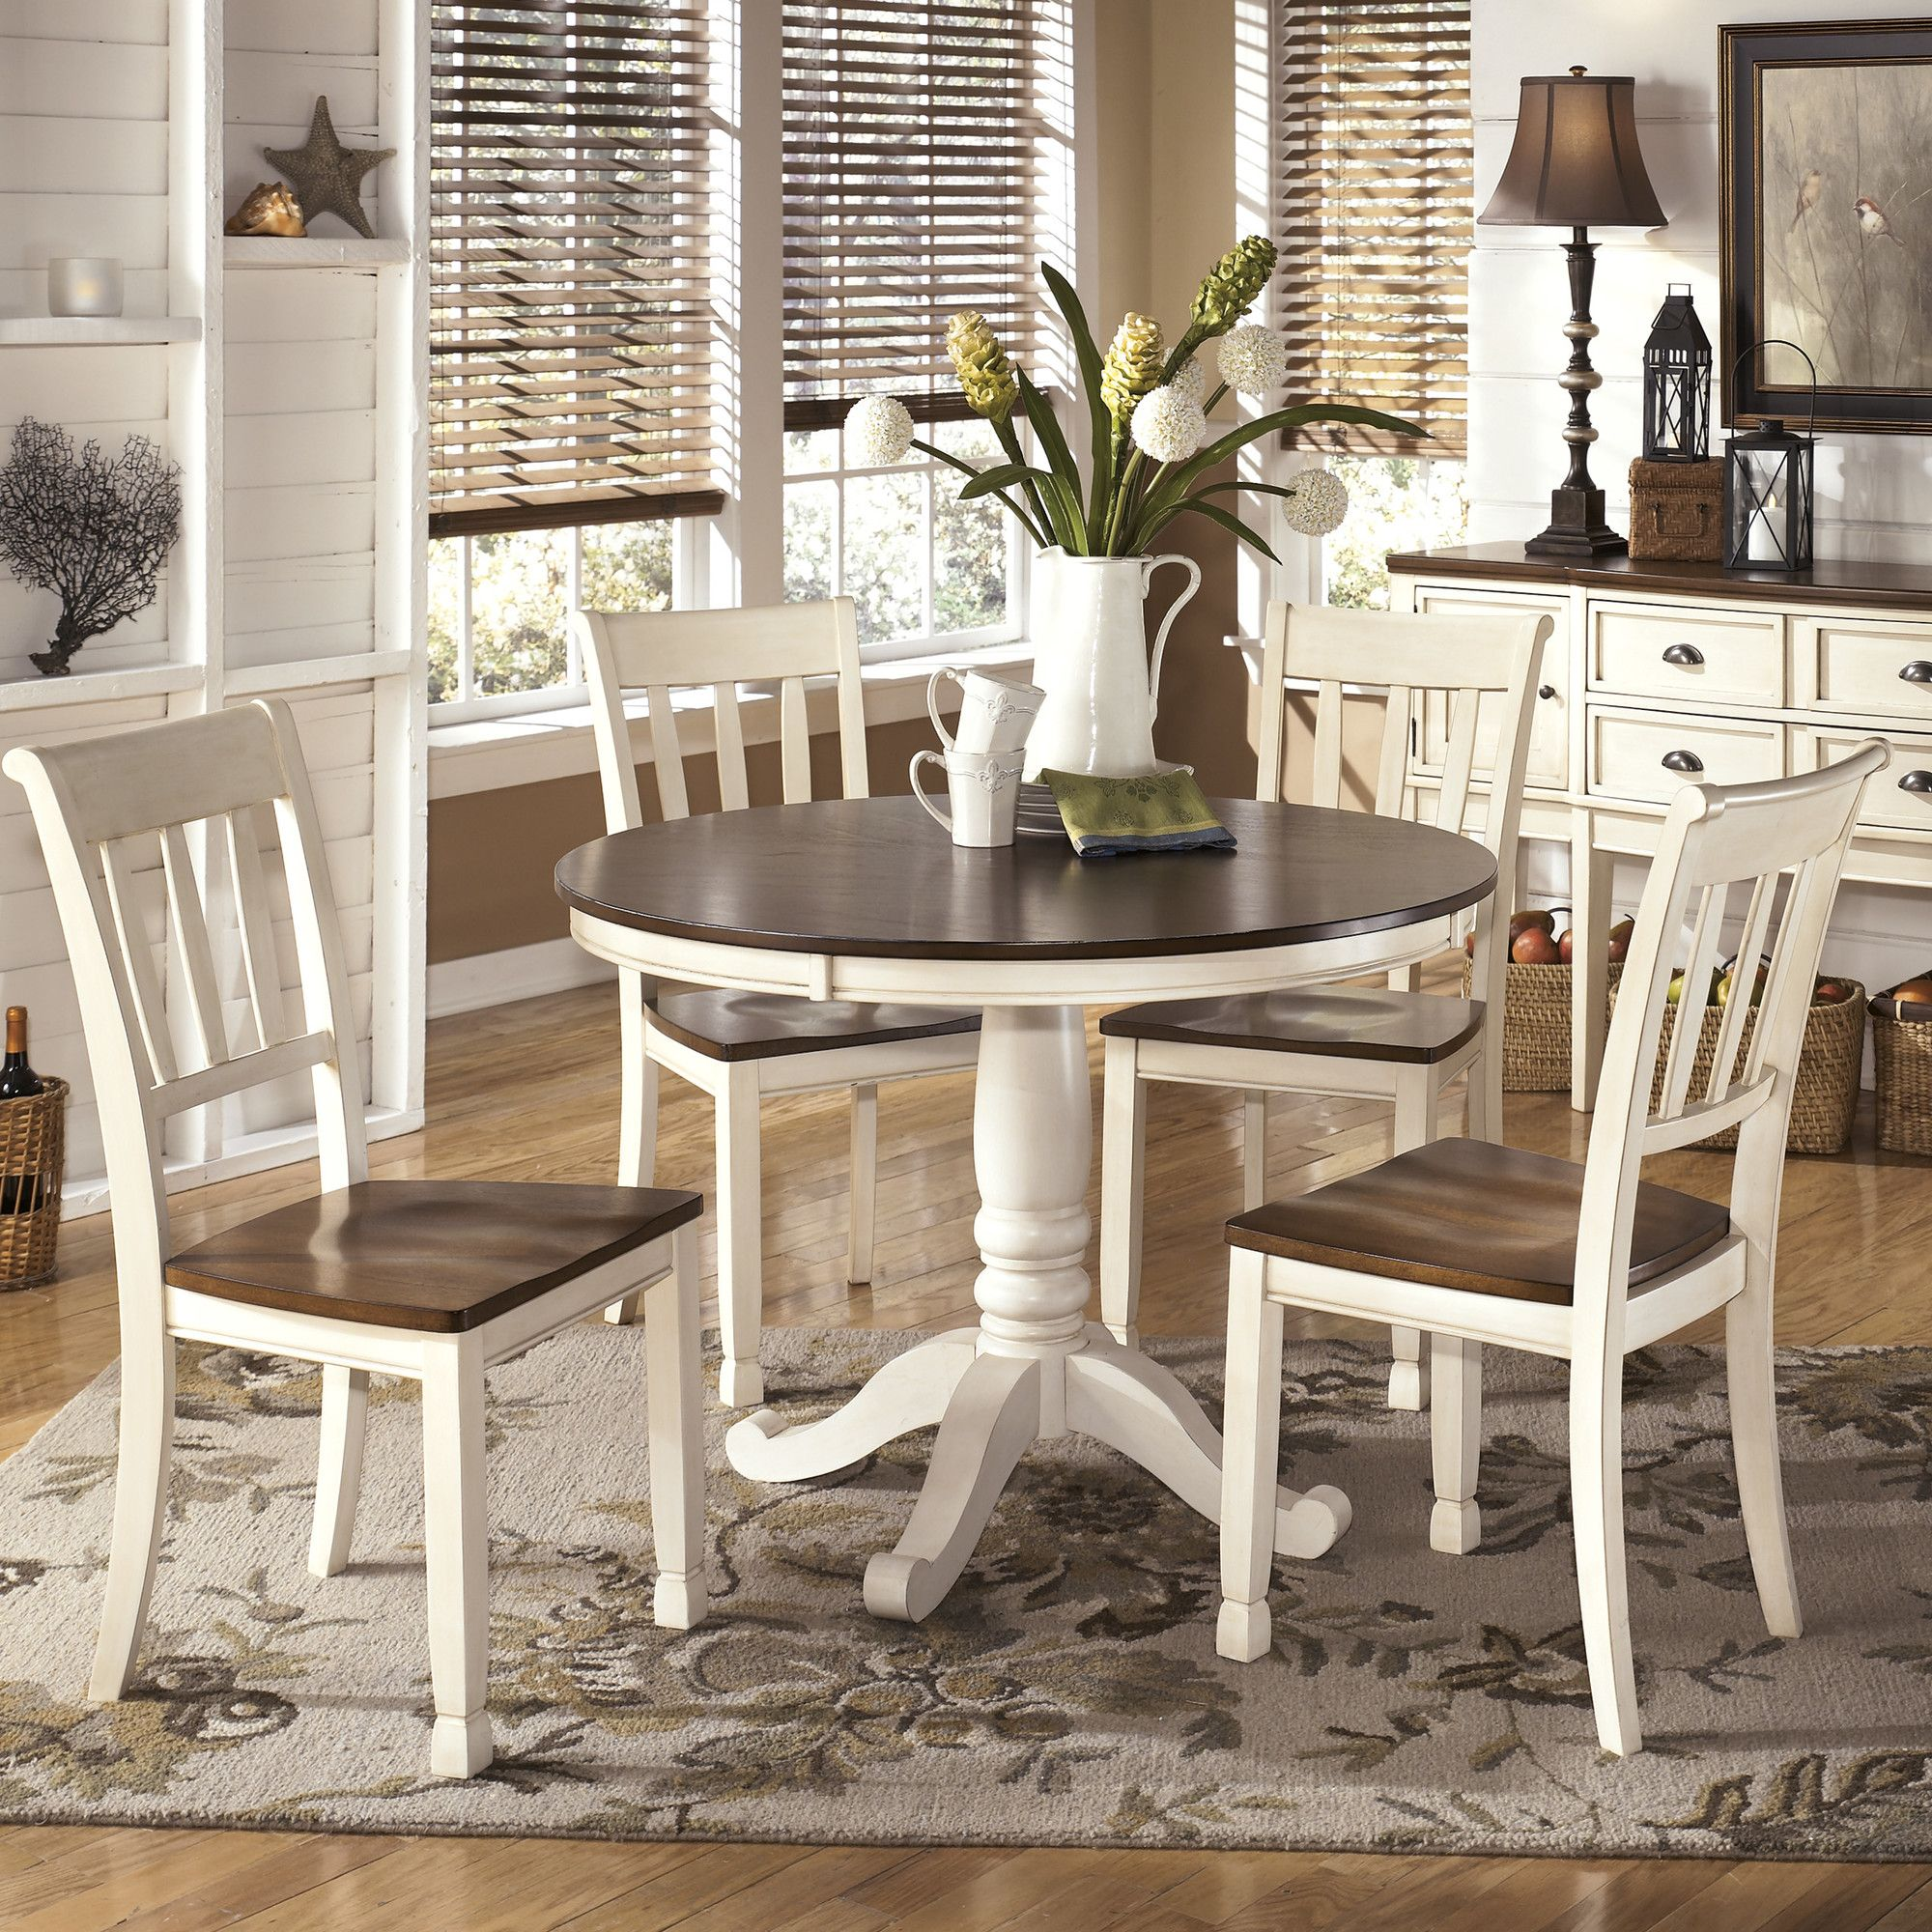 Stylish The 15 Best Online Furniture Stores: Throckmorton 5 Piece Dining Set